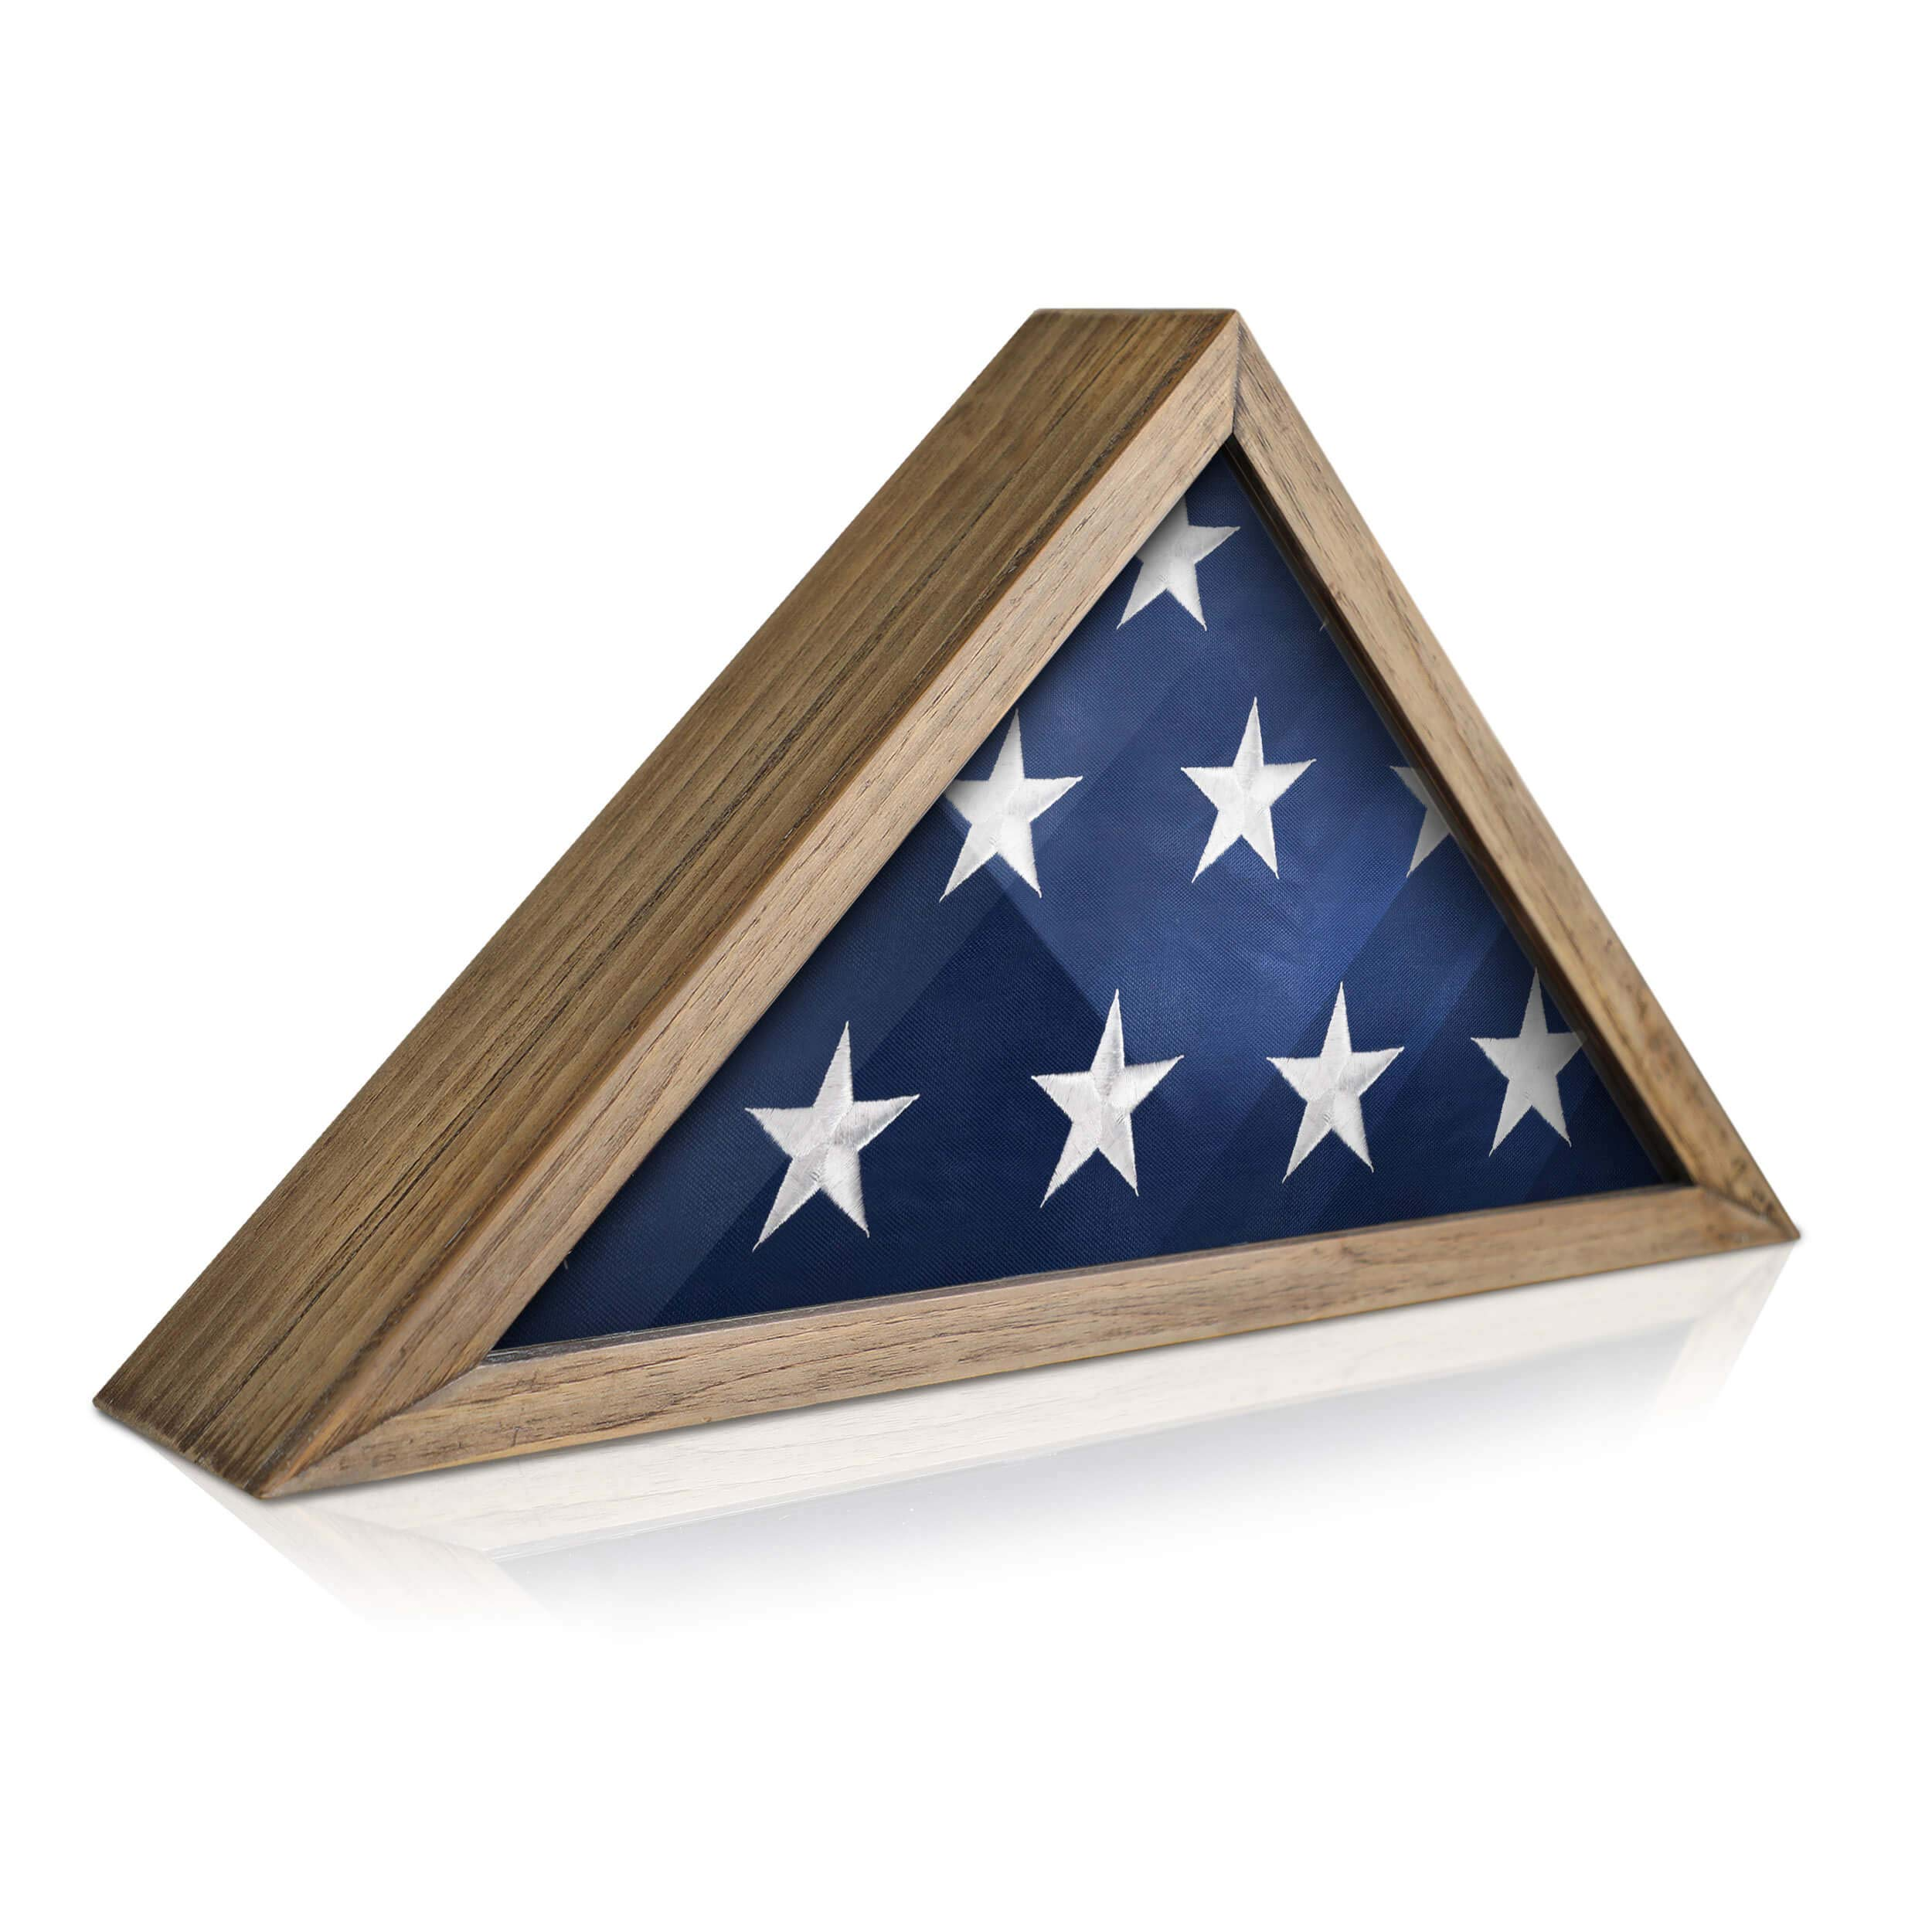 Rustic Flag Case - SOLID WOOD Military Flag Display Case for 9.5 x 5 American Veteran Burial Flag, Wall Mounted Burial Flag Frame, - Flag Shadow Box to display folded flag. (Weathered Wood) by HBCY Creations